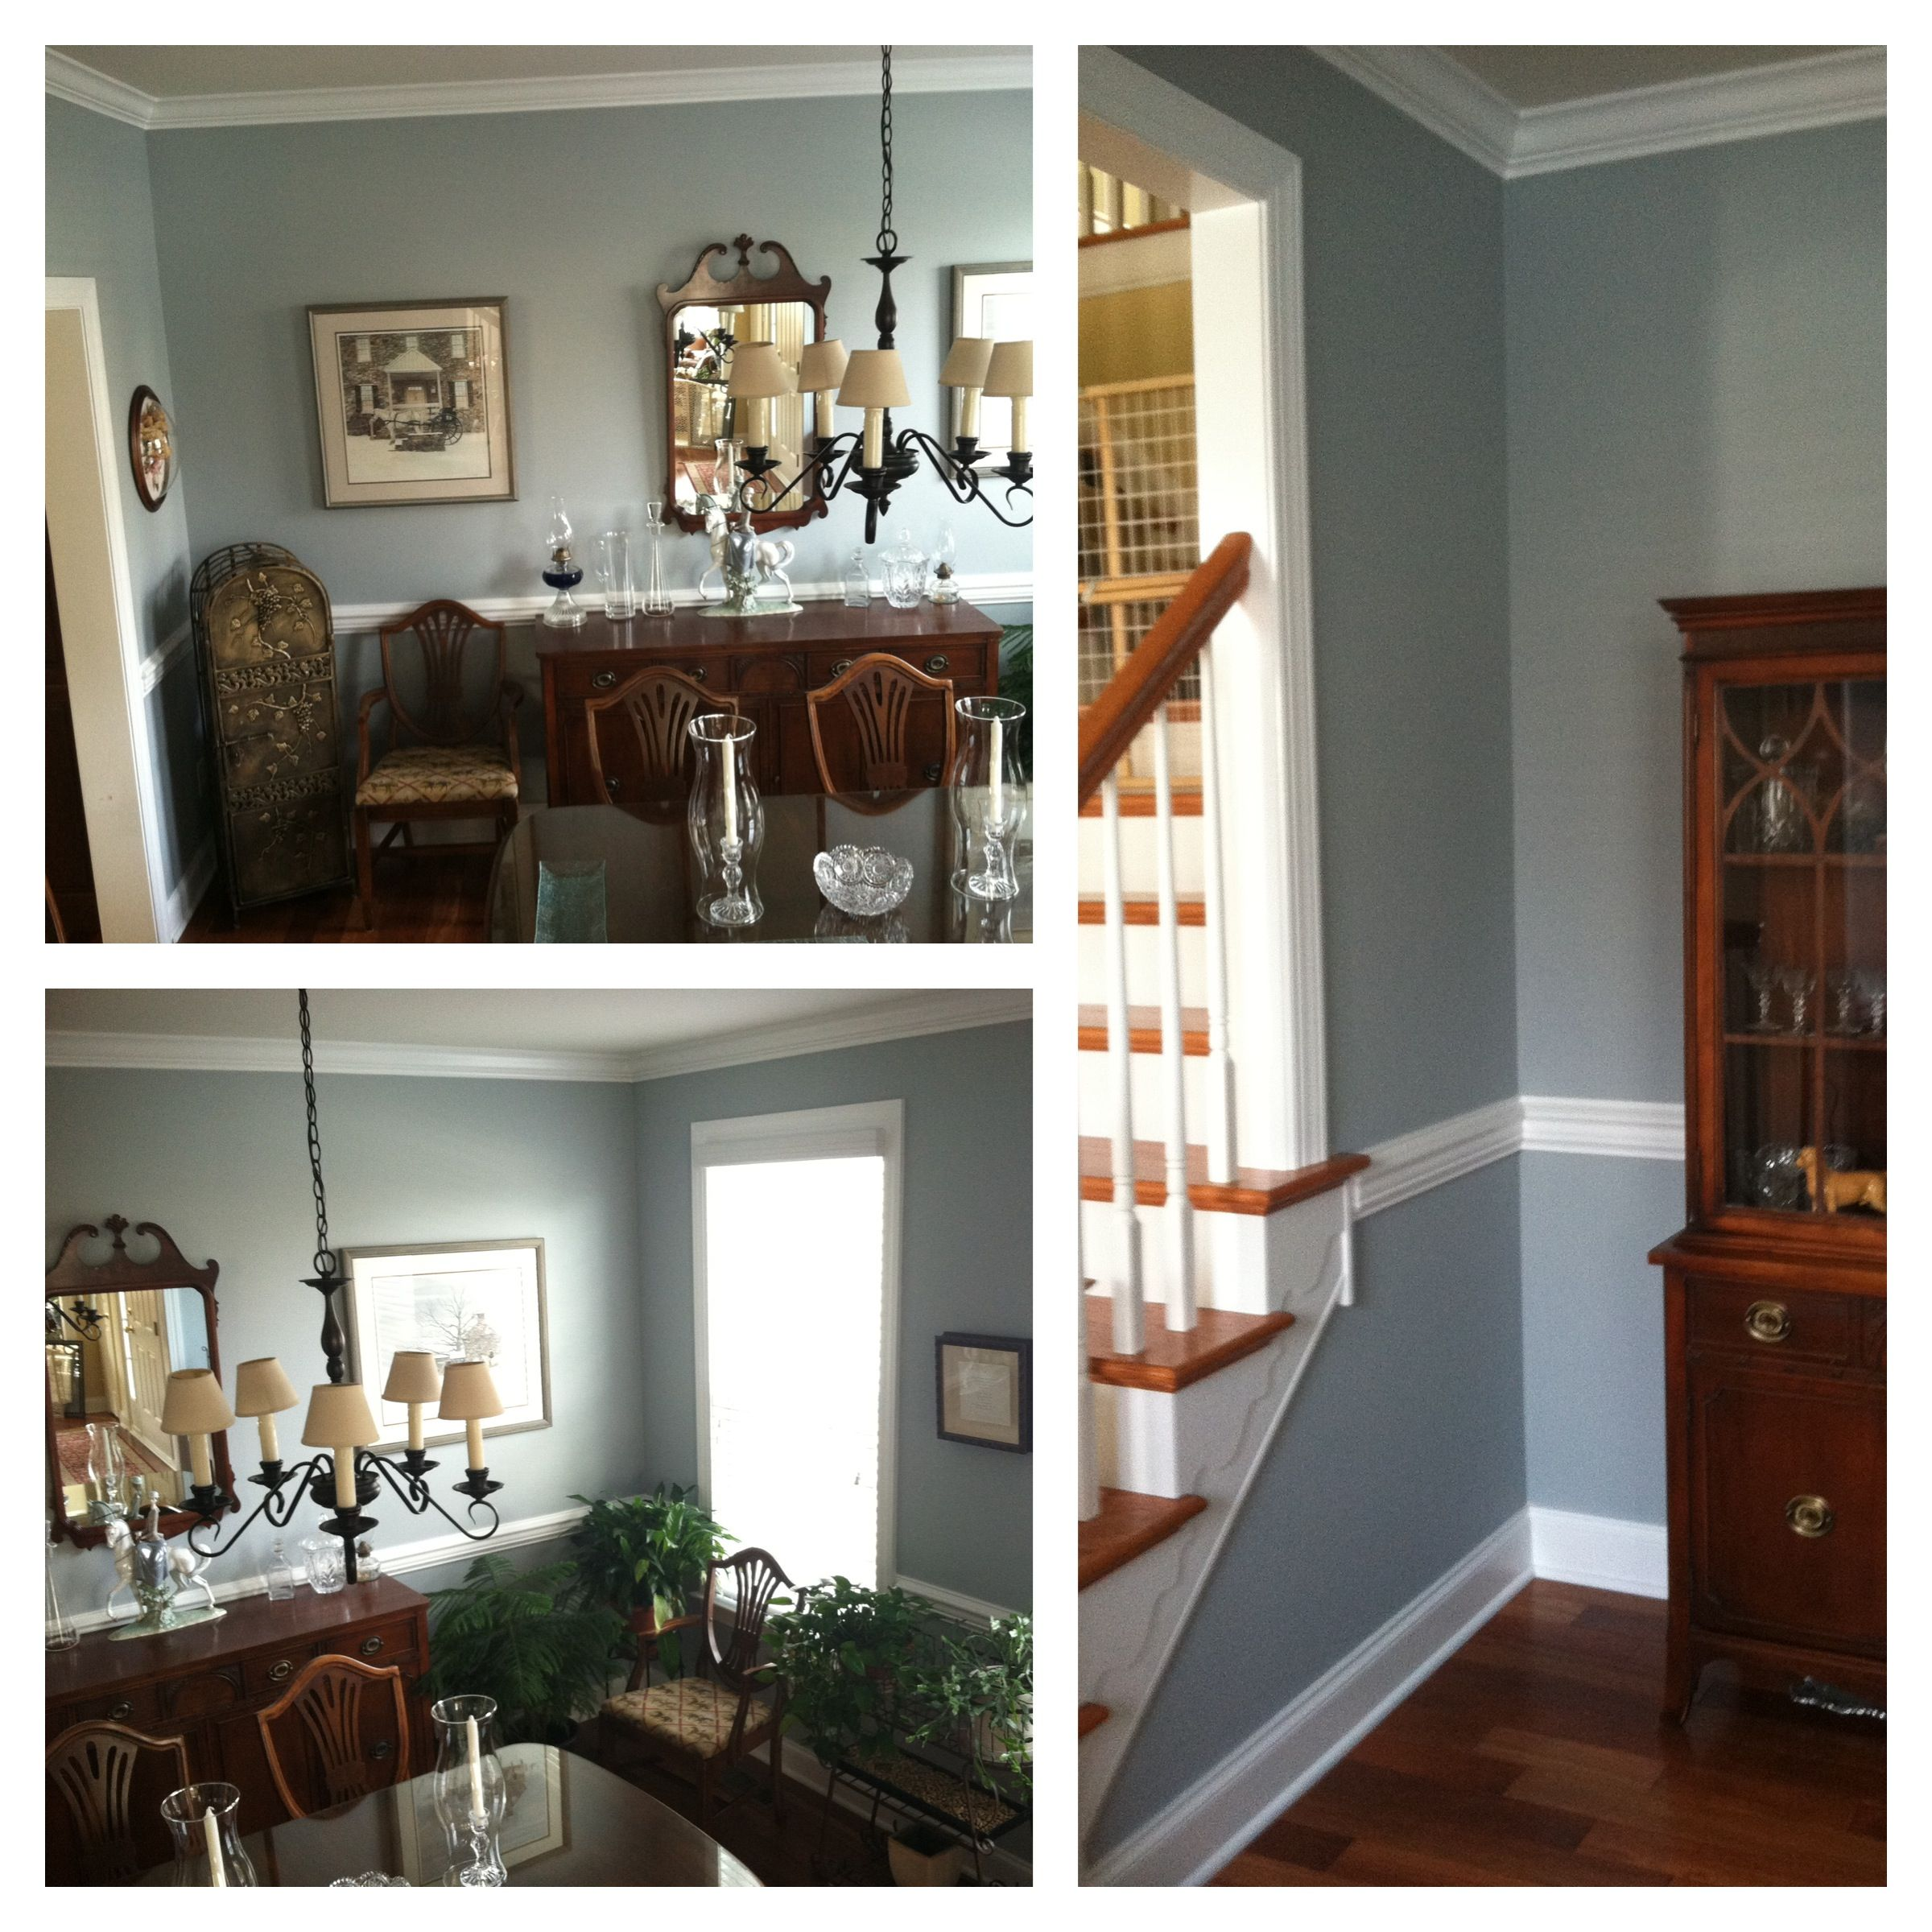 Master Bedroom Paint Colors Sherwin Williams blue springs - benjamin moore 1592. i had it matched at sherwin